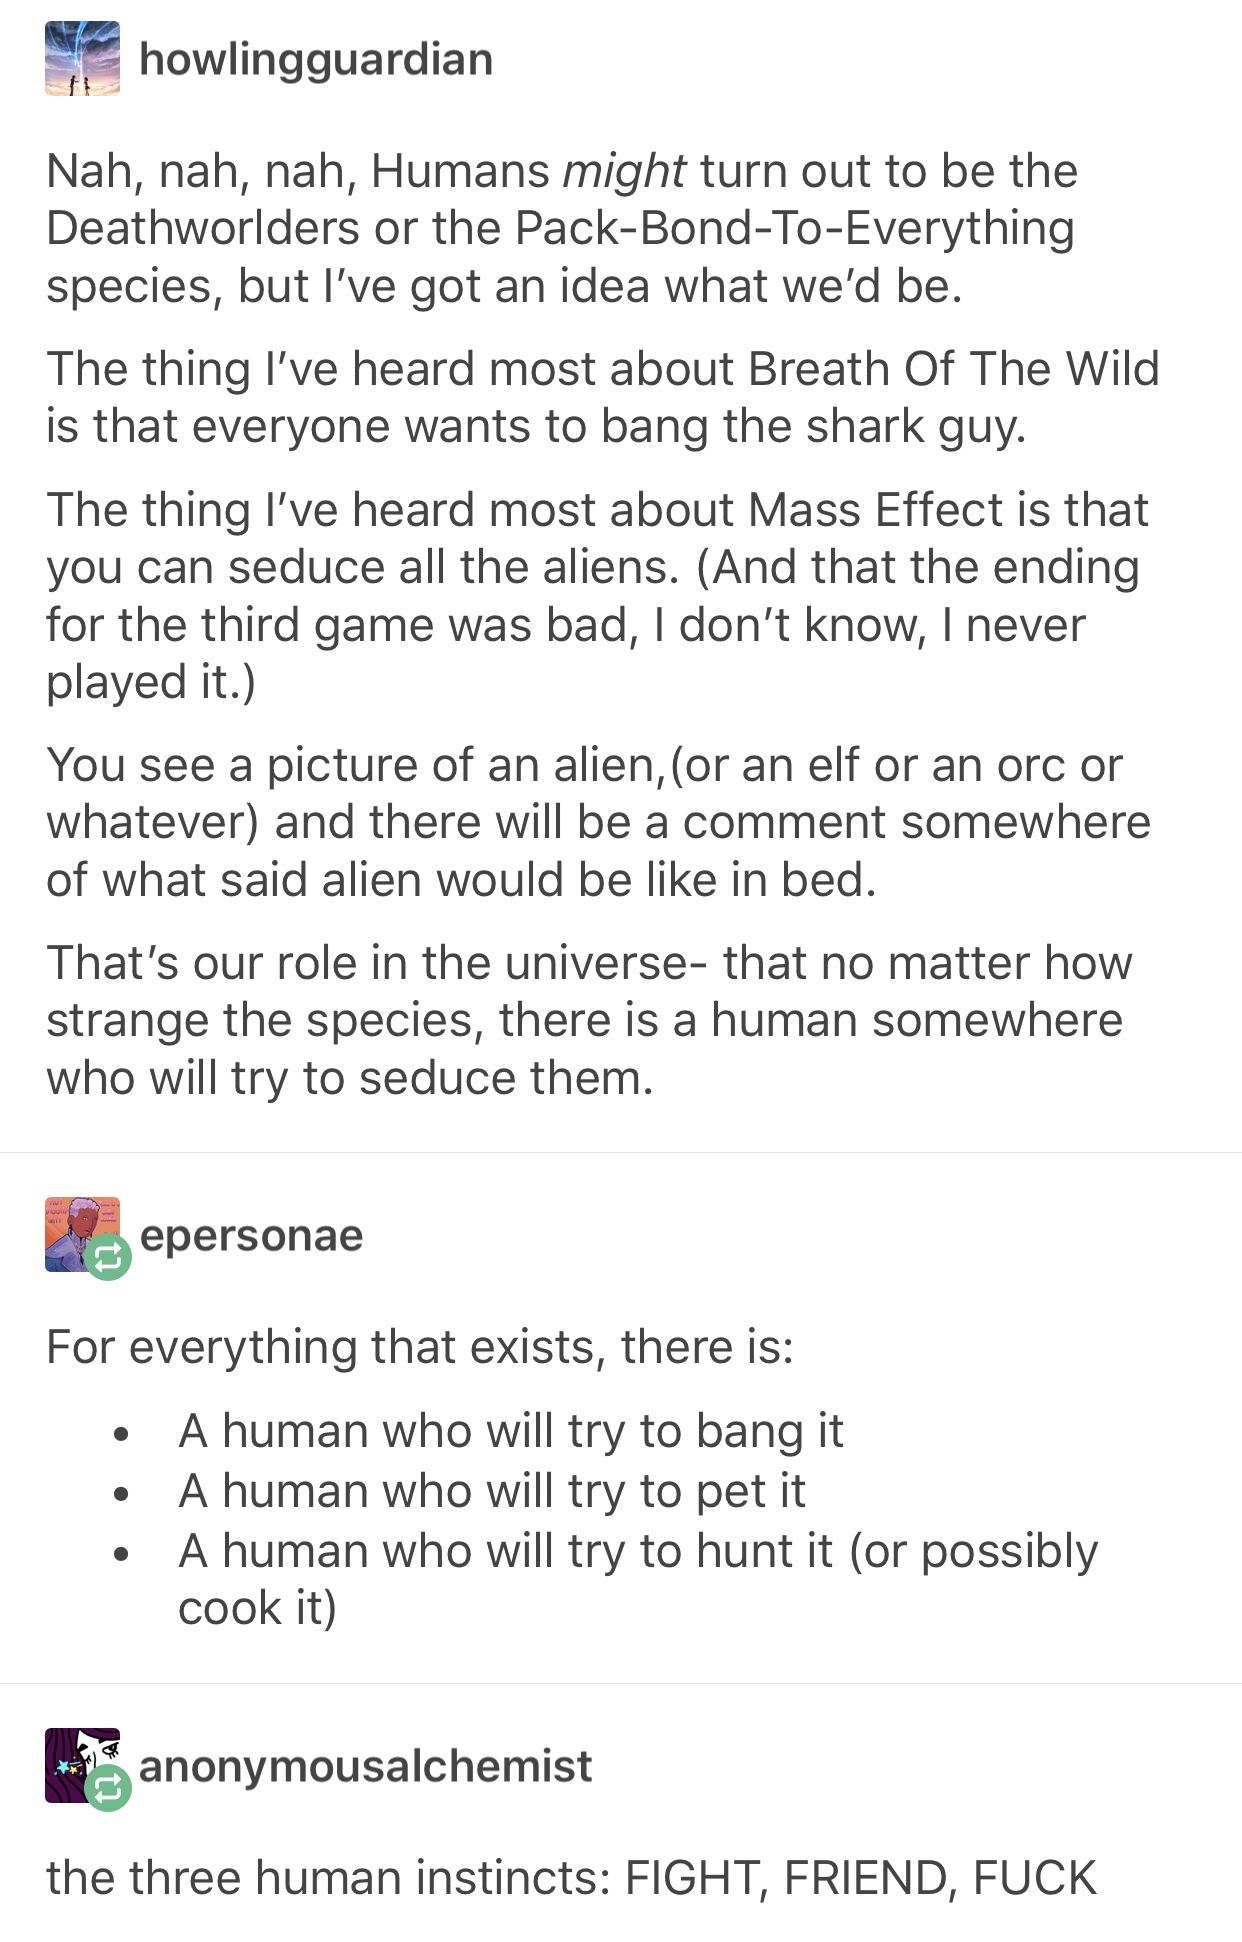 For any alien/creature there is a human who will try to